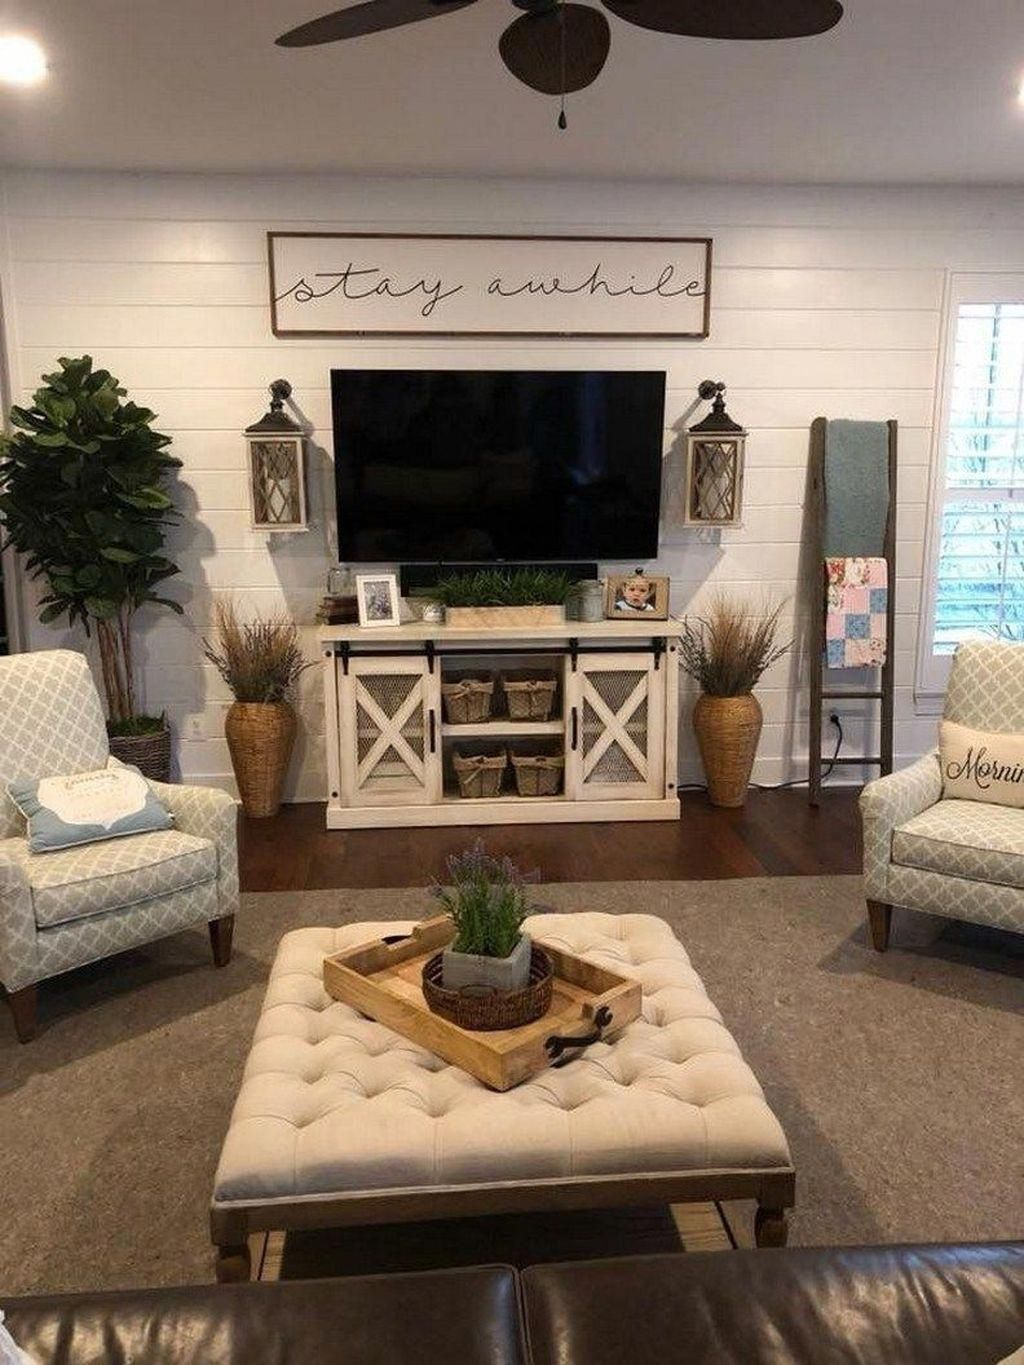 wall decor above couch | Living room tv stand, Farm house ...